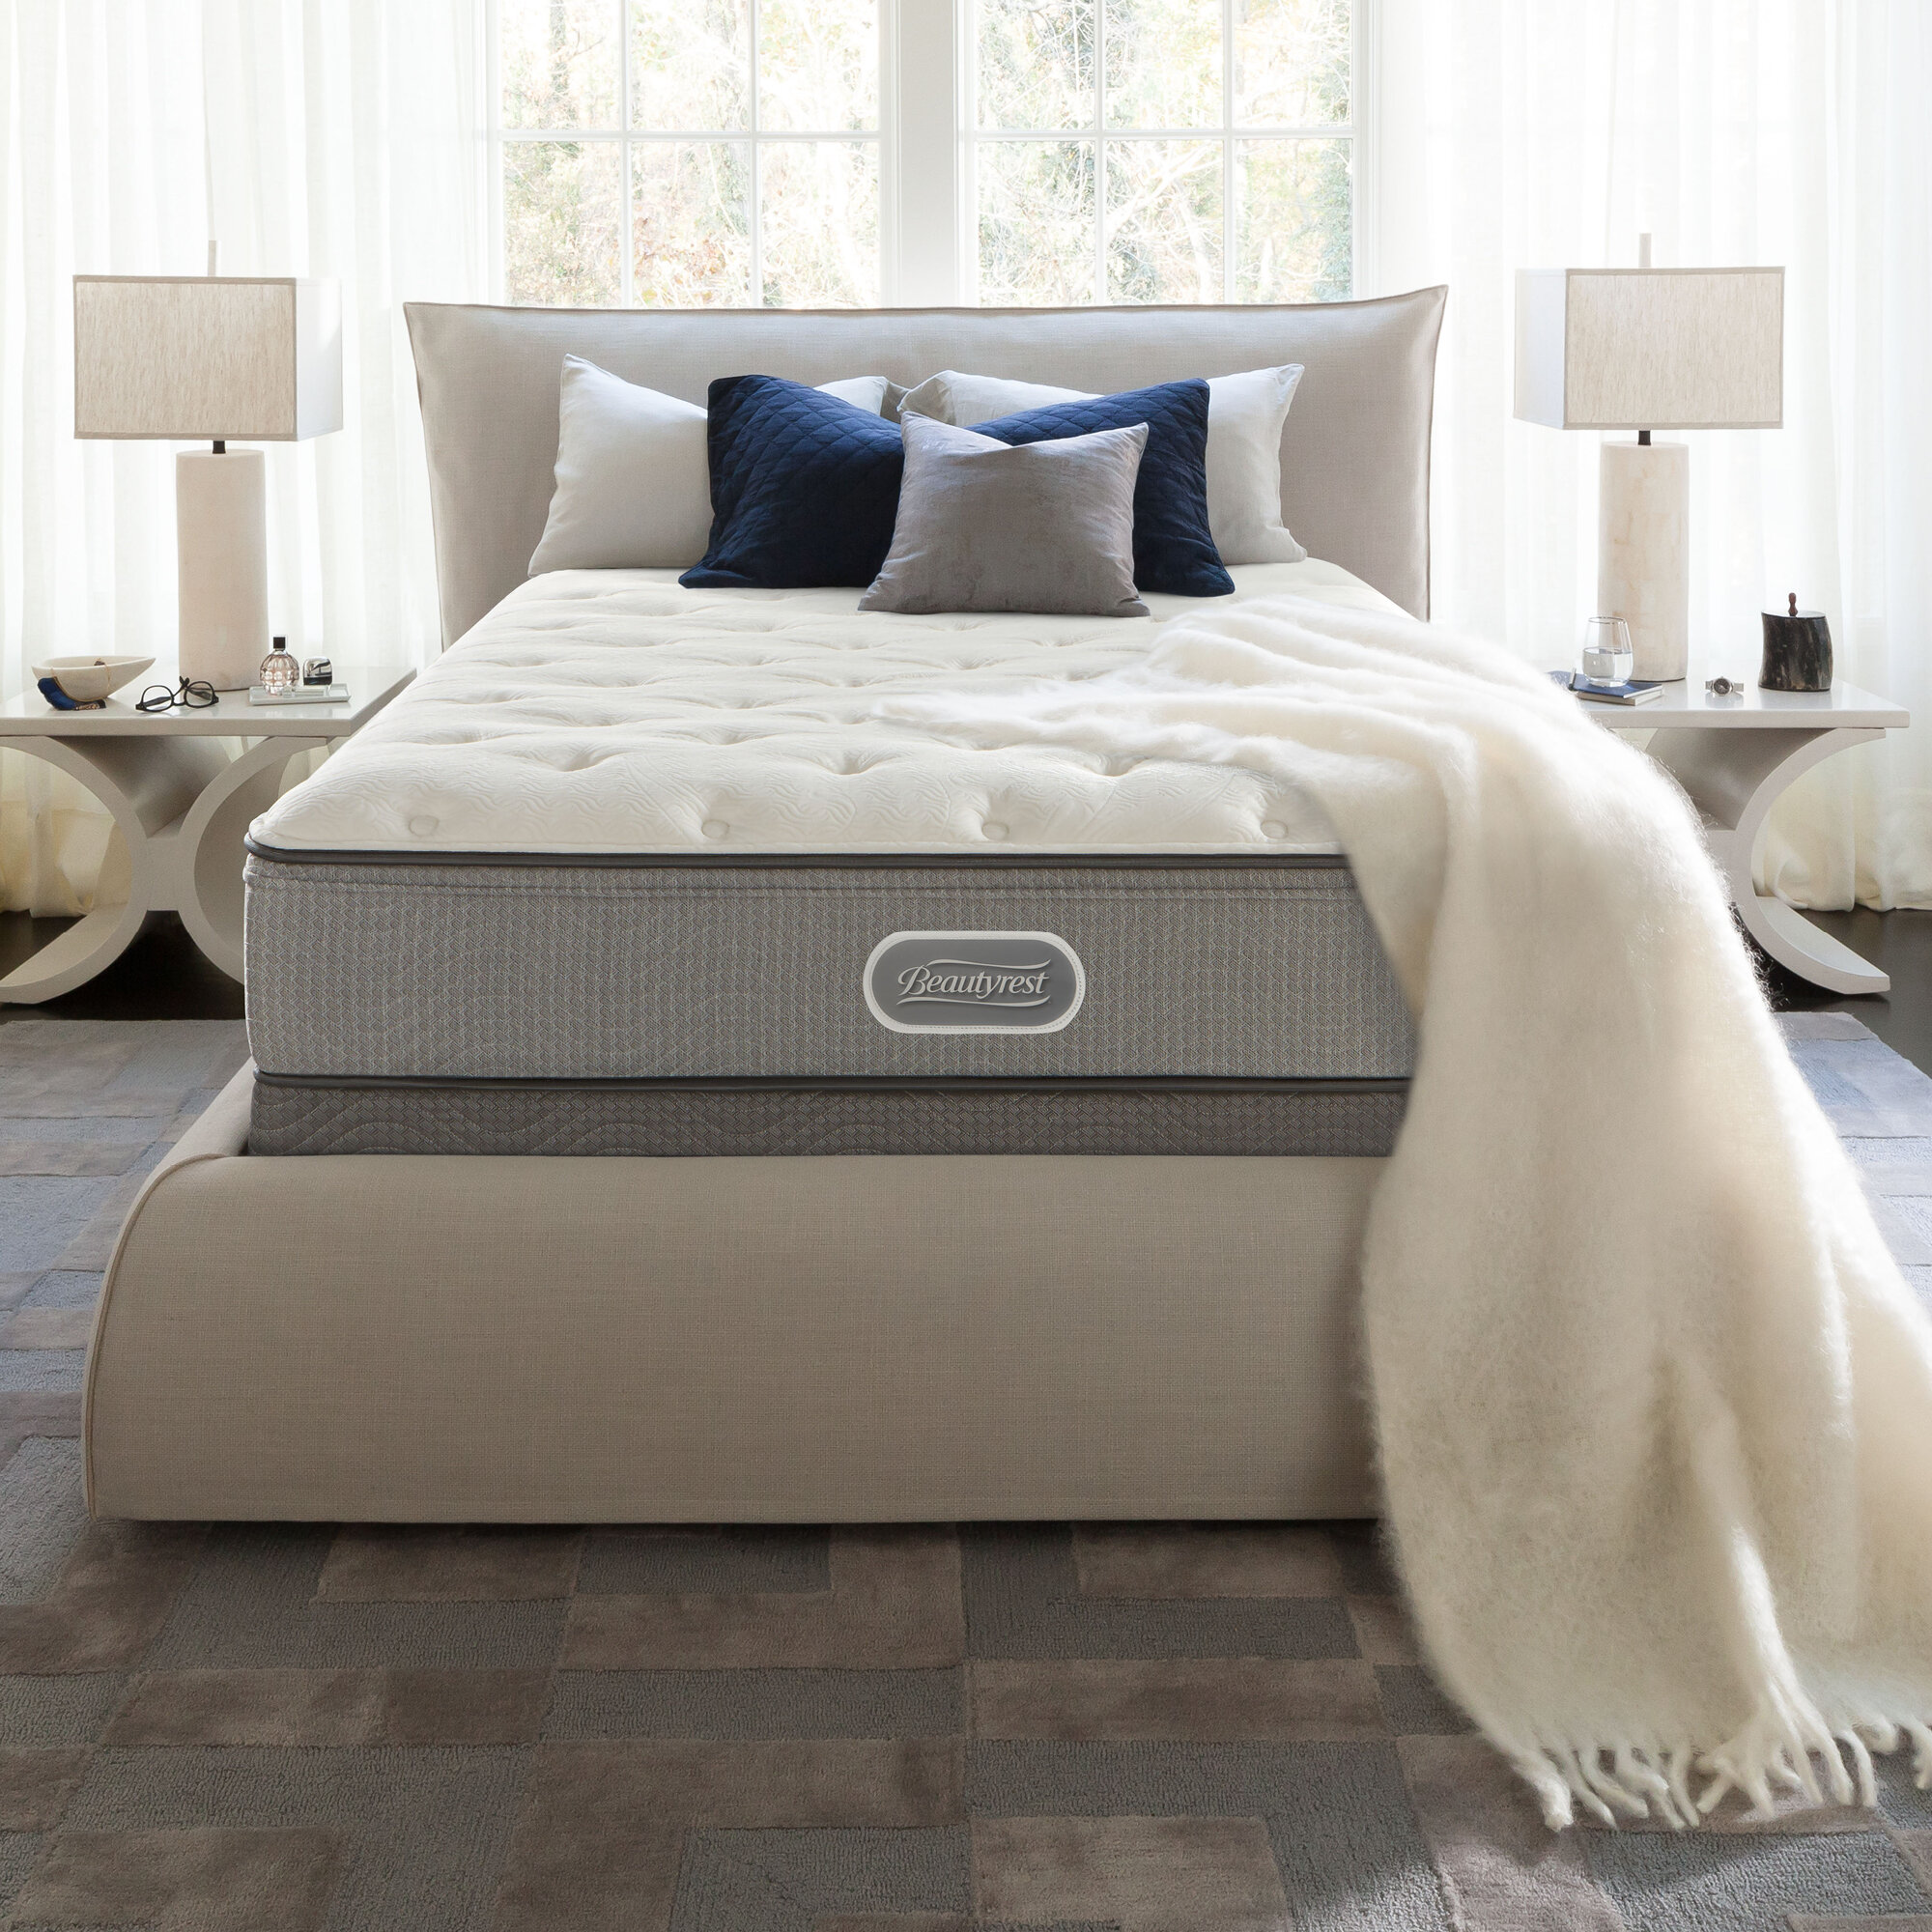 spring topper mattress top extra pillow bonnel